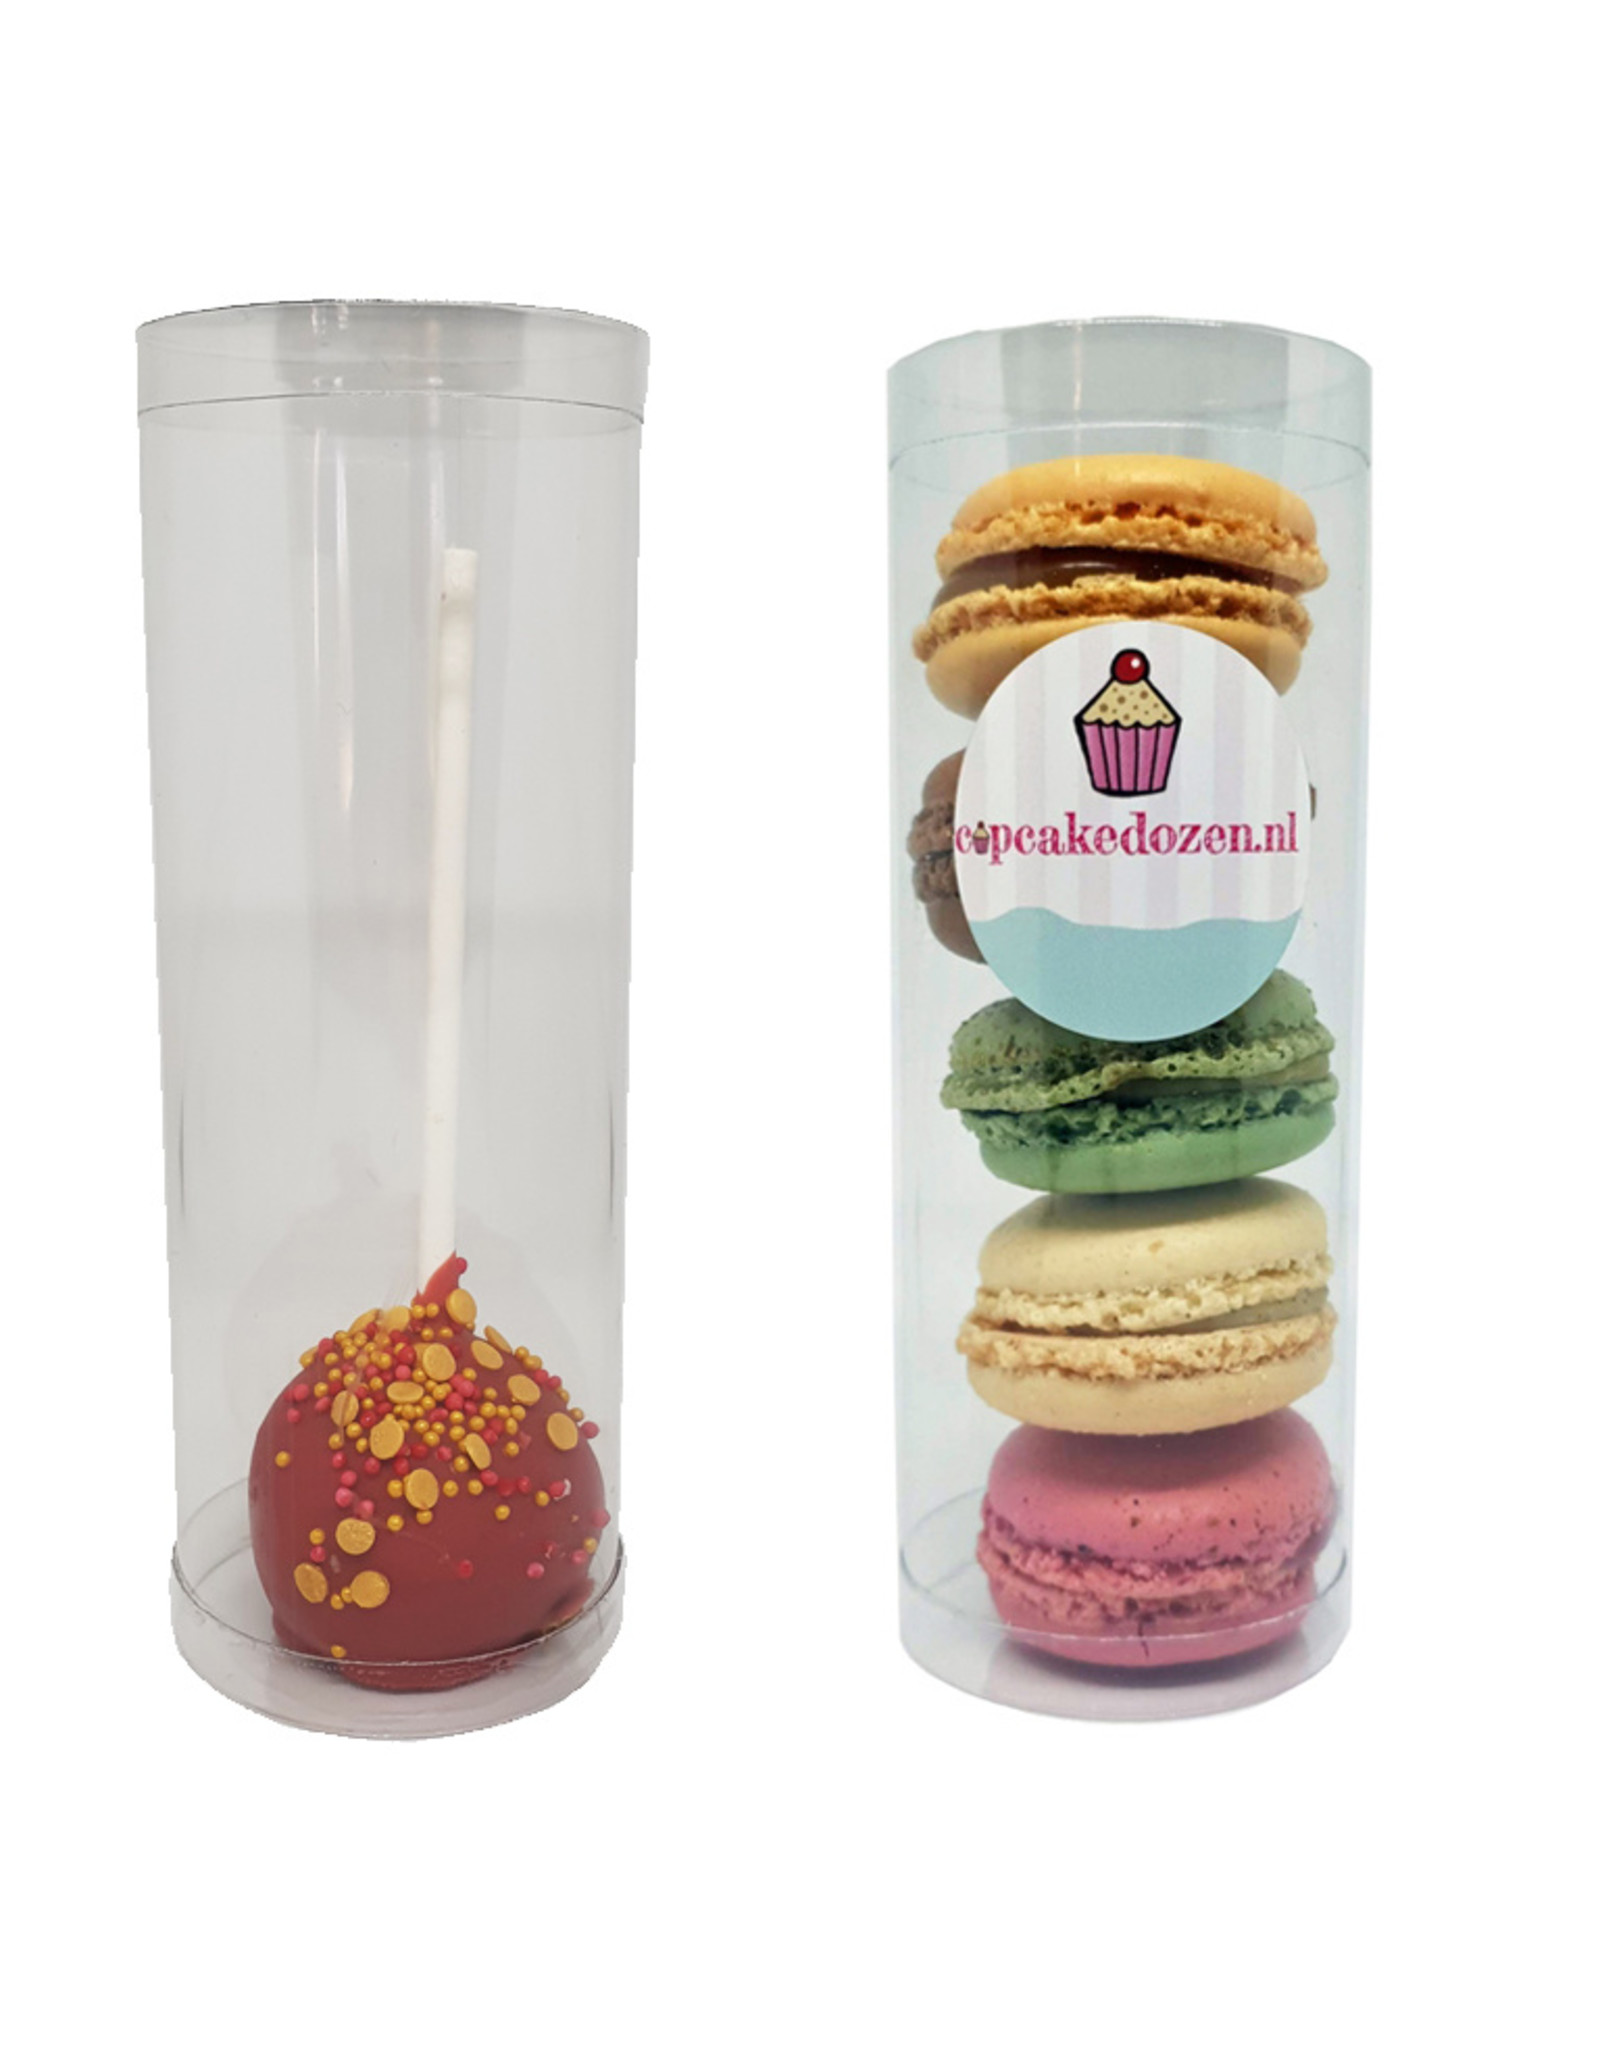 Tube for 5 macarons or 1 cakepop (per 100 pieces)